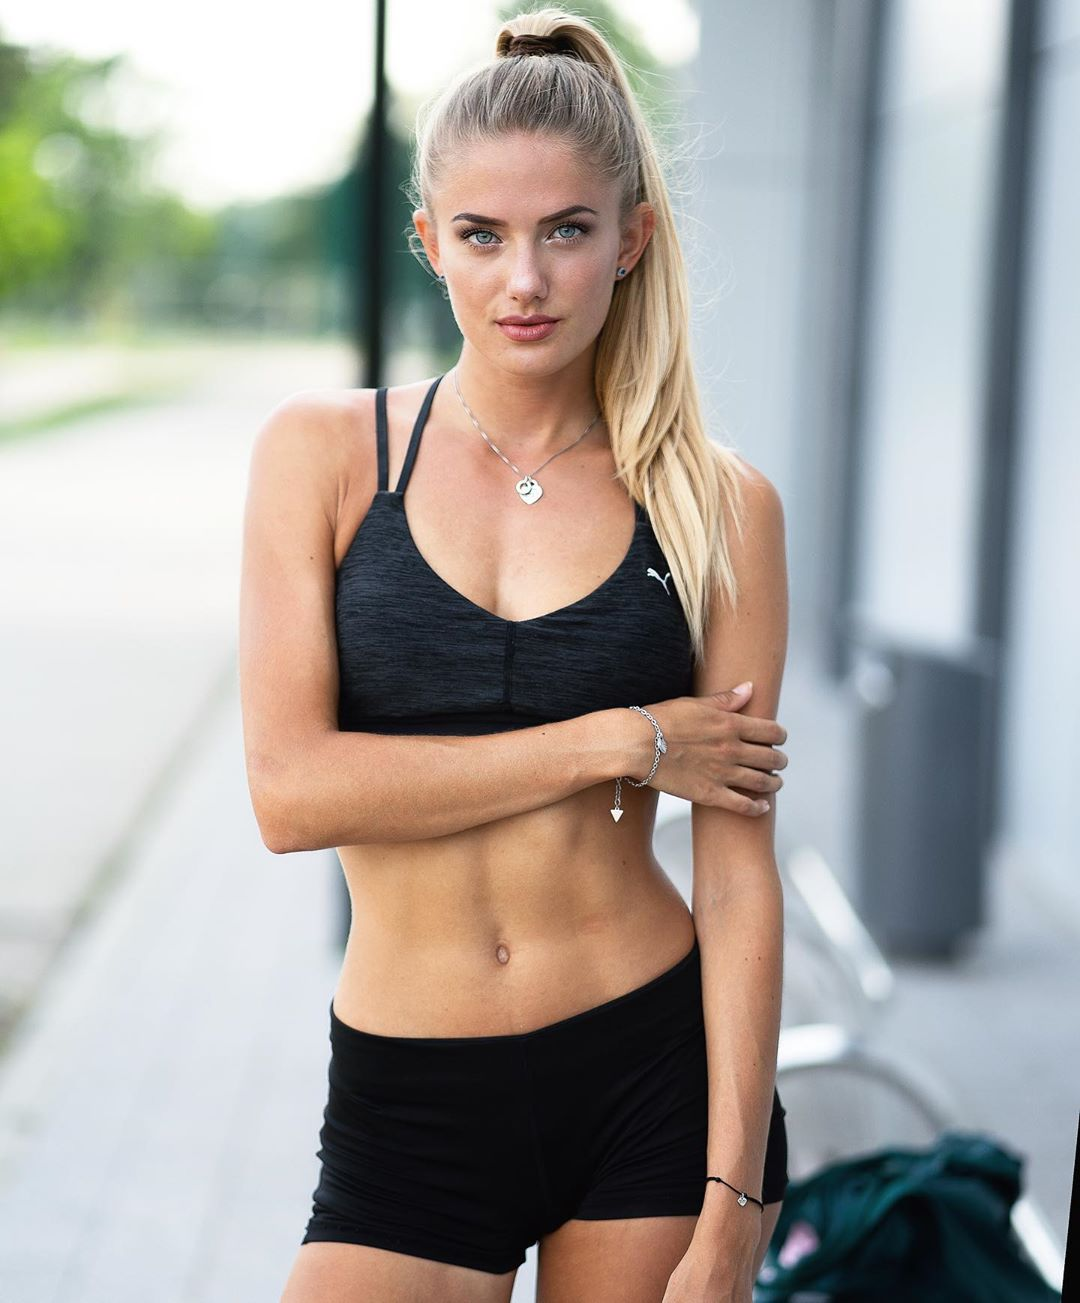 Alica Schmidt Black Sports Bra Pose - Alica Schmidt Net Worth, Pics, Wallpapers, Career and Biography